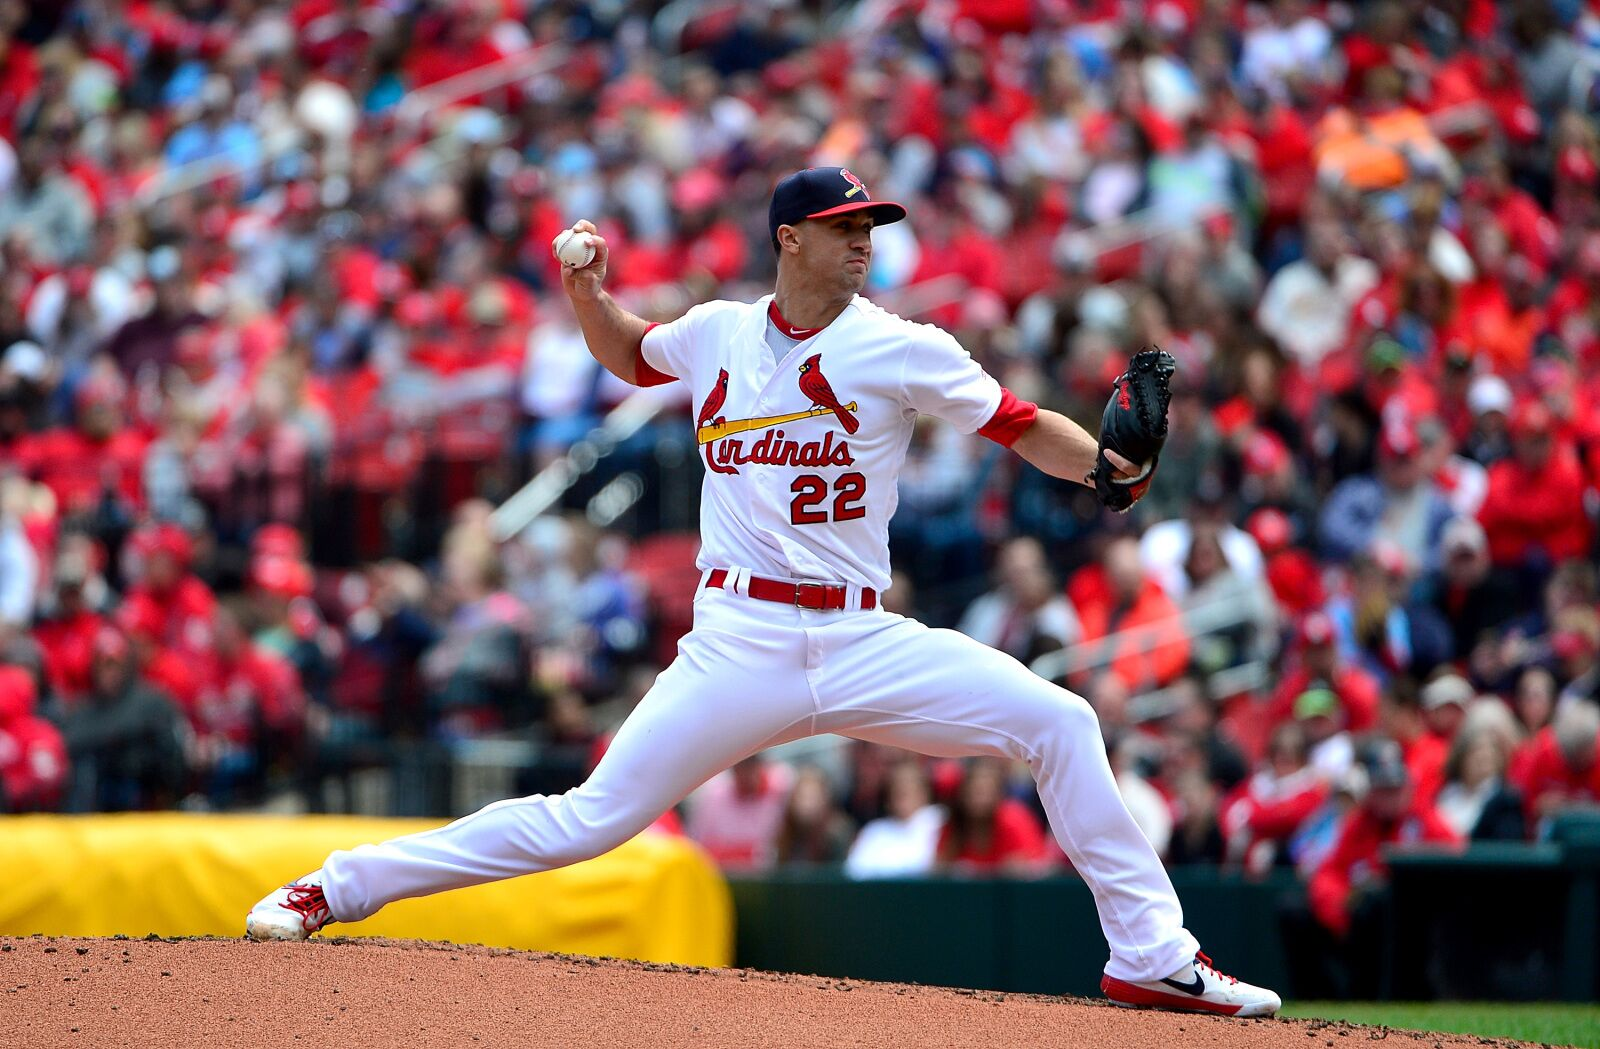 St. Louis Cardinals Bold Prediction: Just the beginning for Jack Flaherty